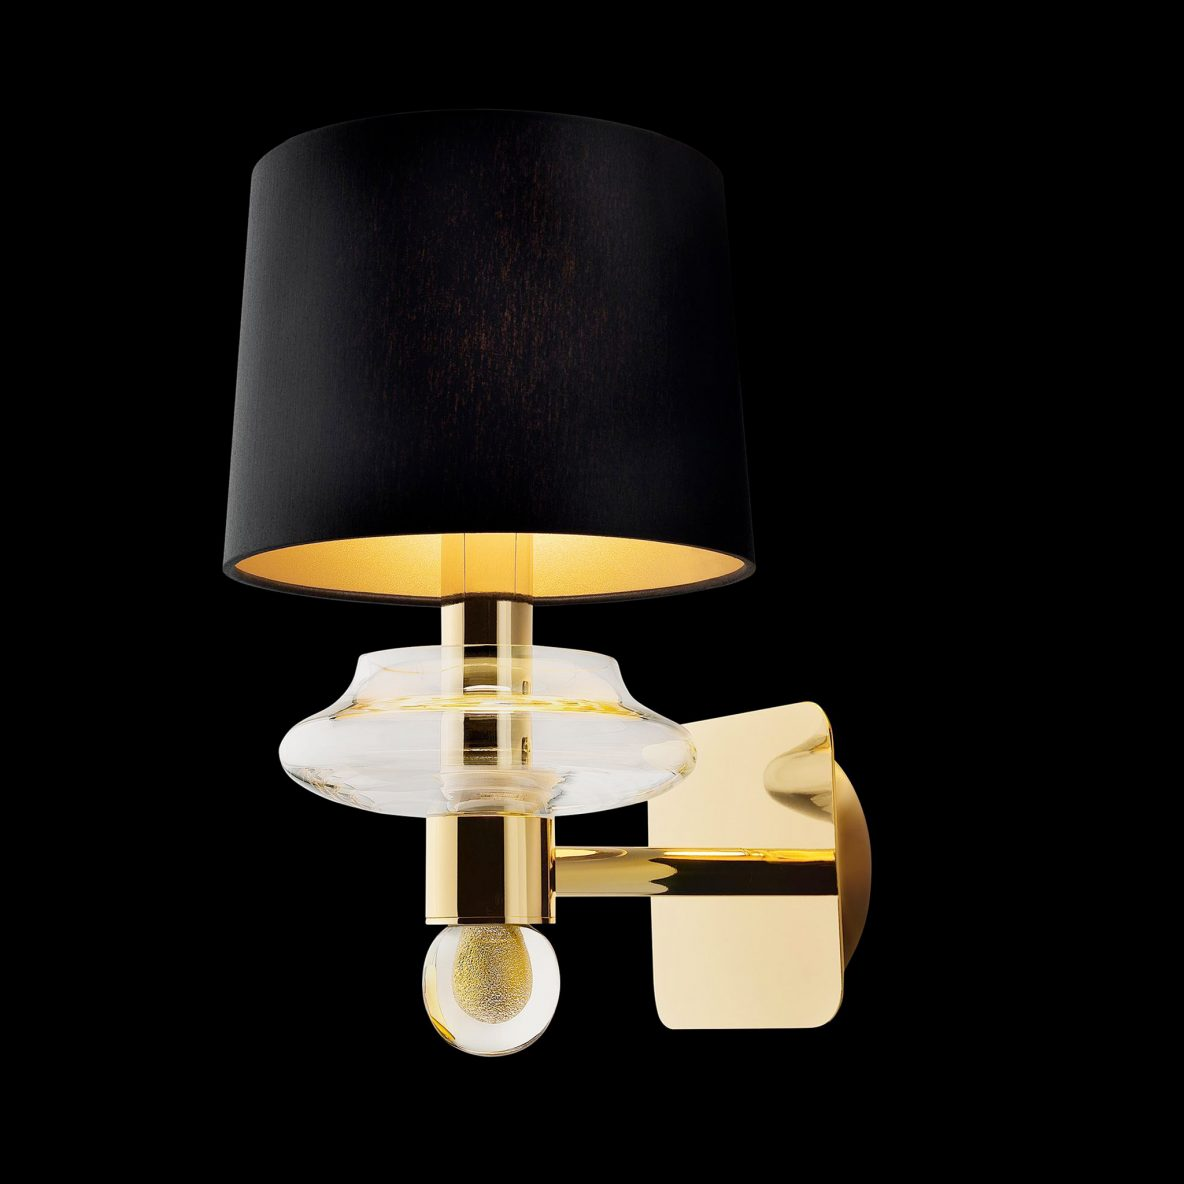 Applique Barovier & Toso Saint Germain - Lighting Design srl